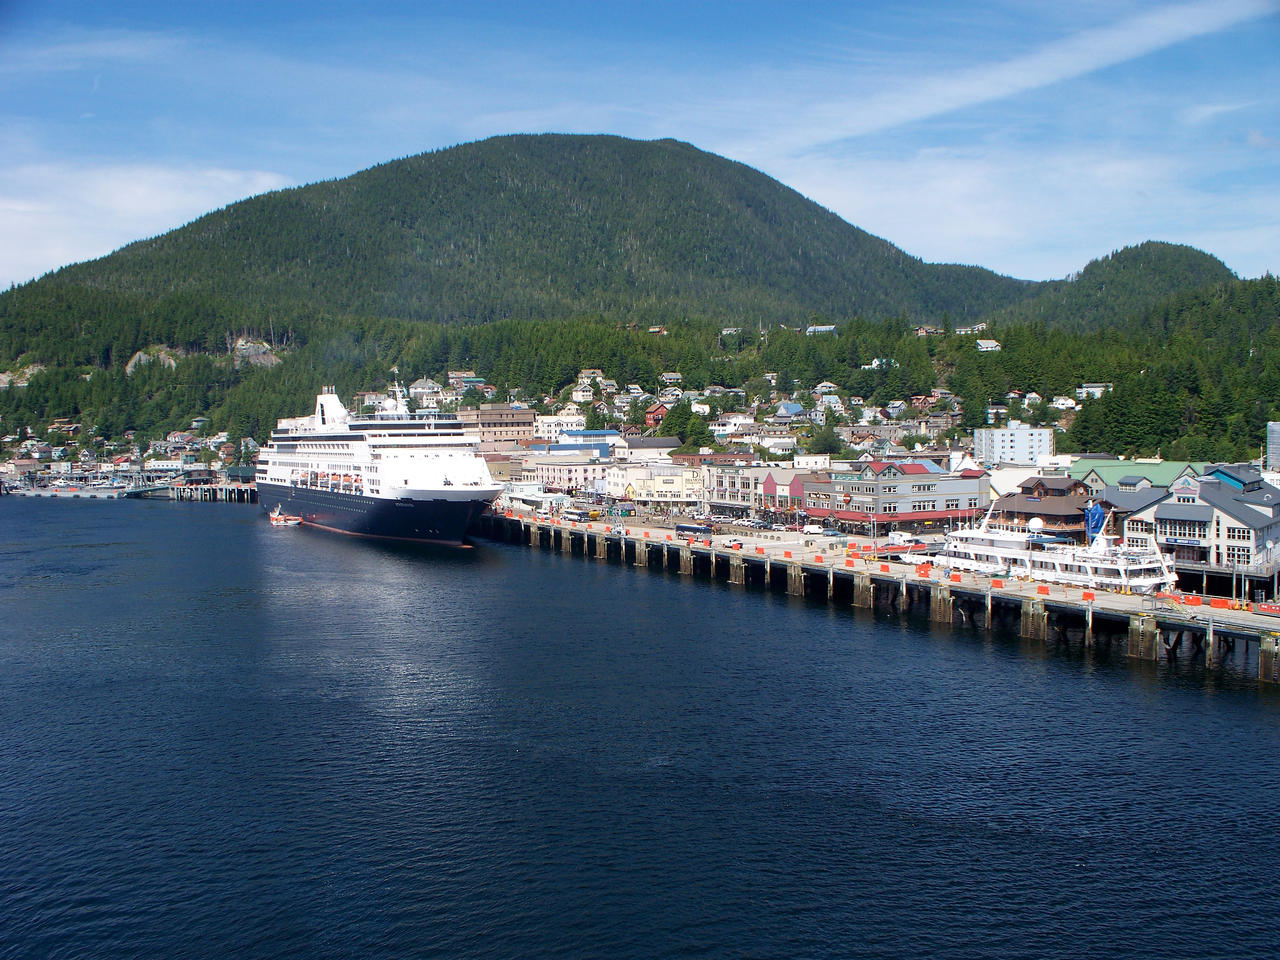 ketchikan chatrooms A place to chat privately, meet interesting people, and make new friends ツ.